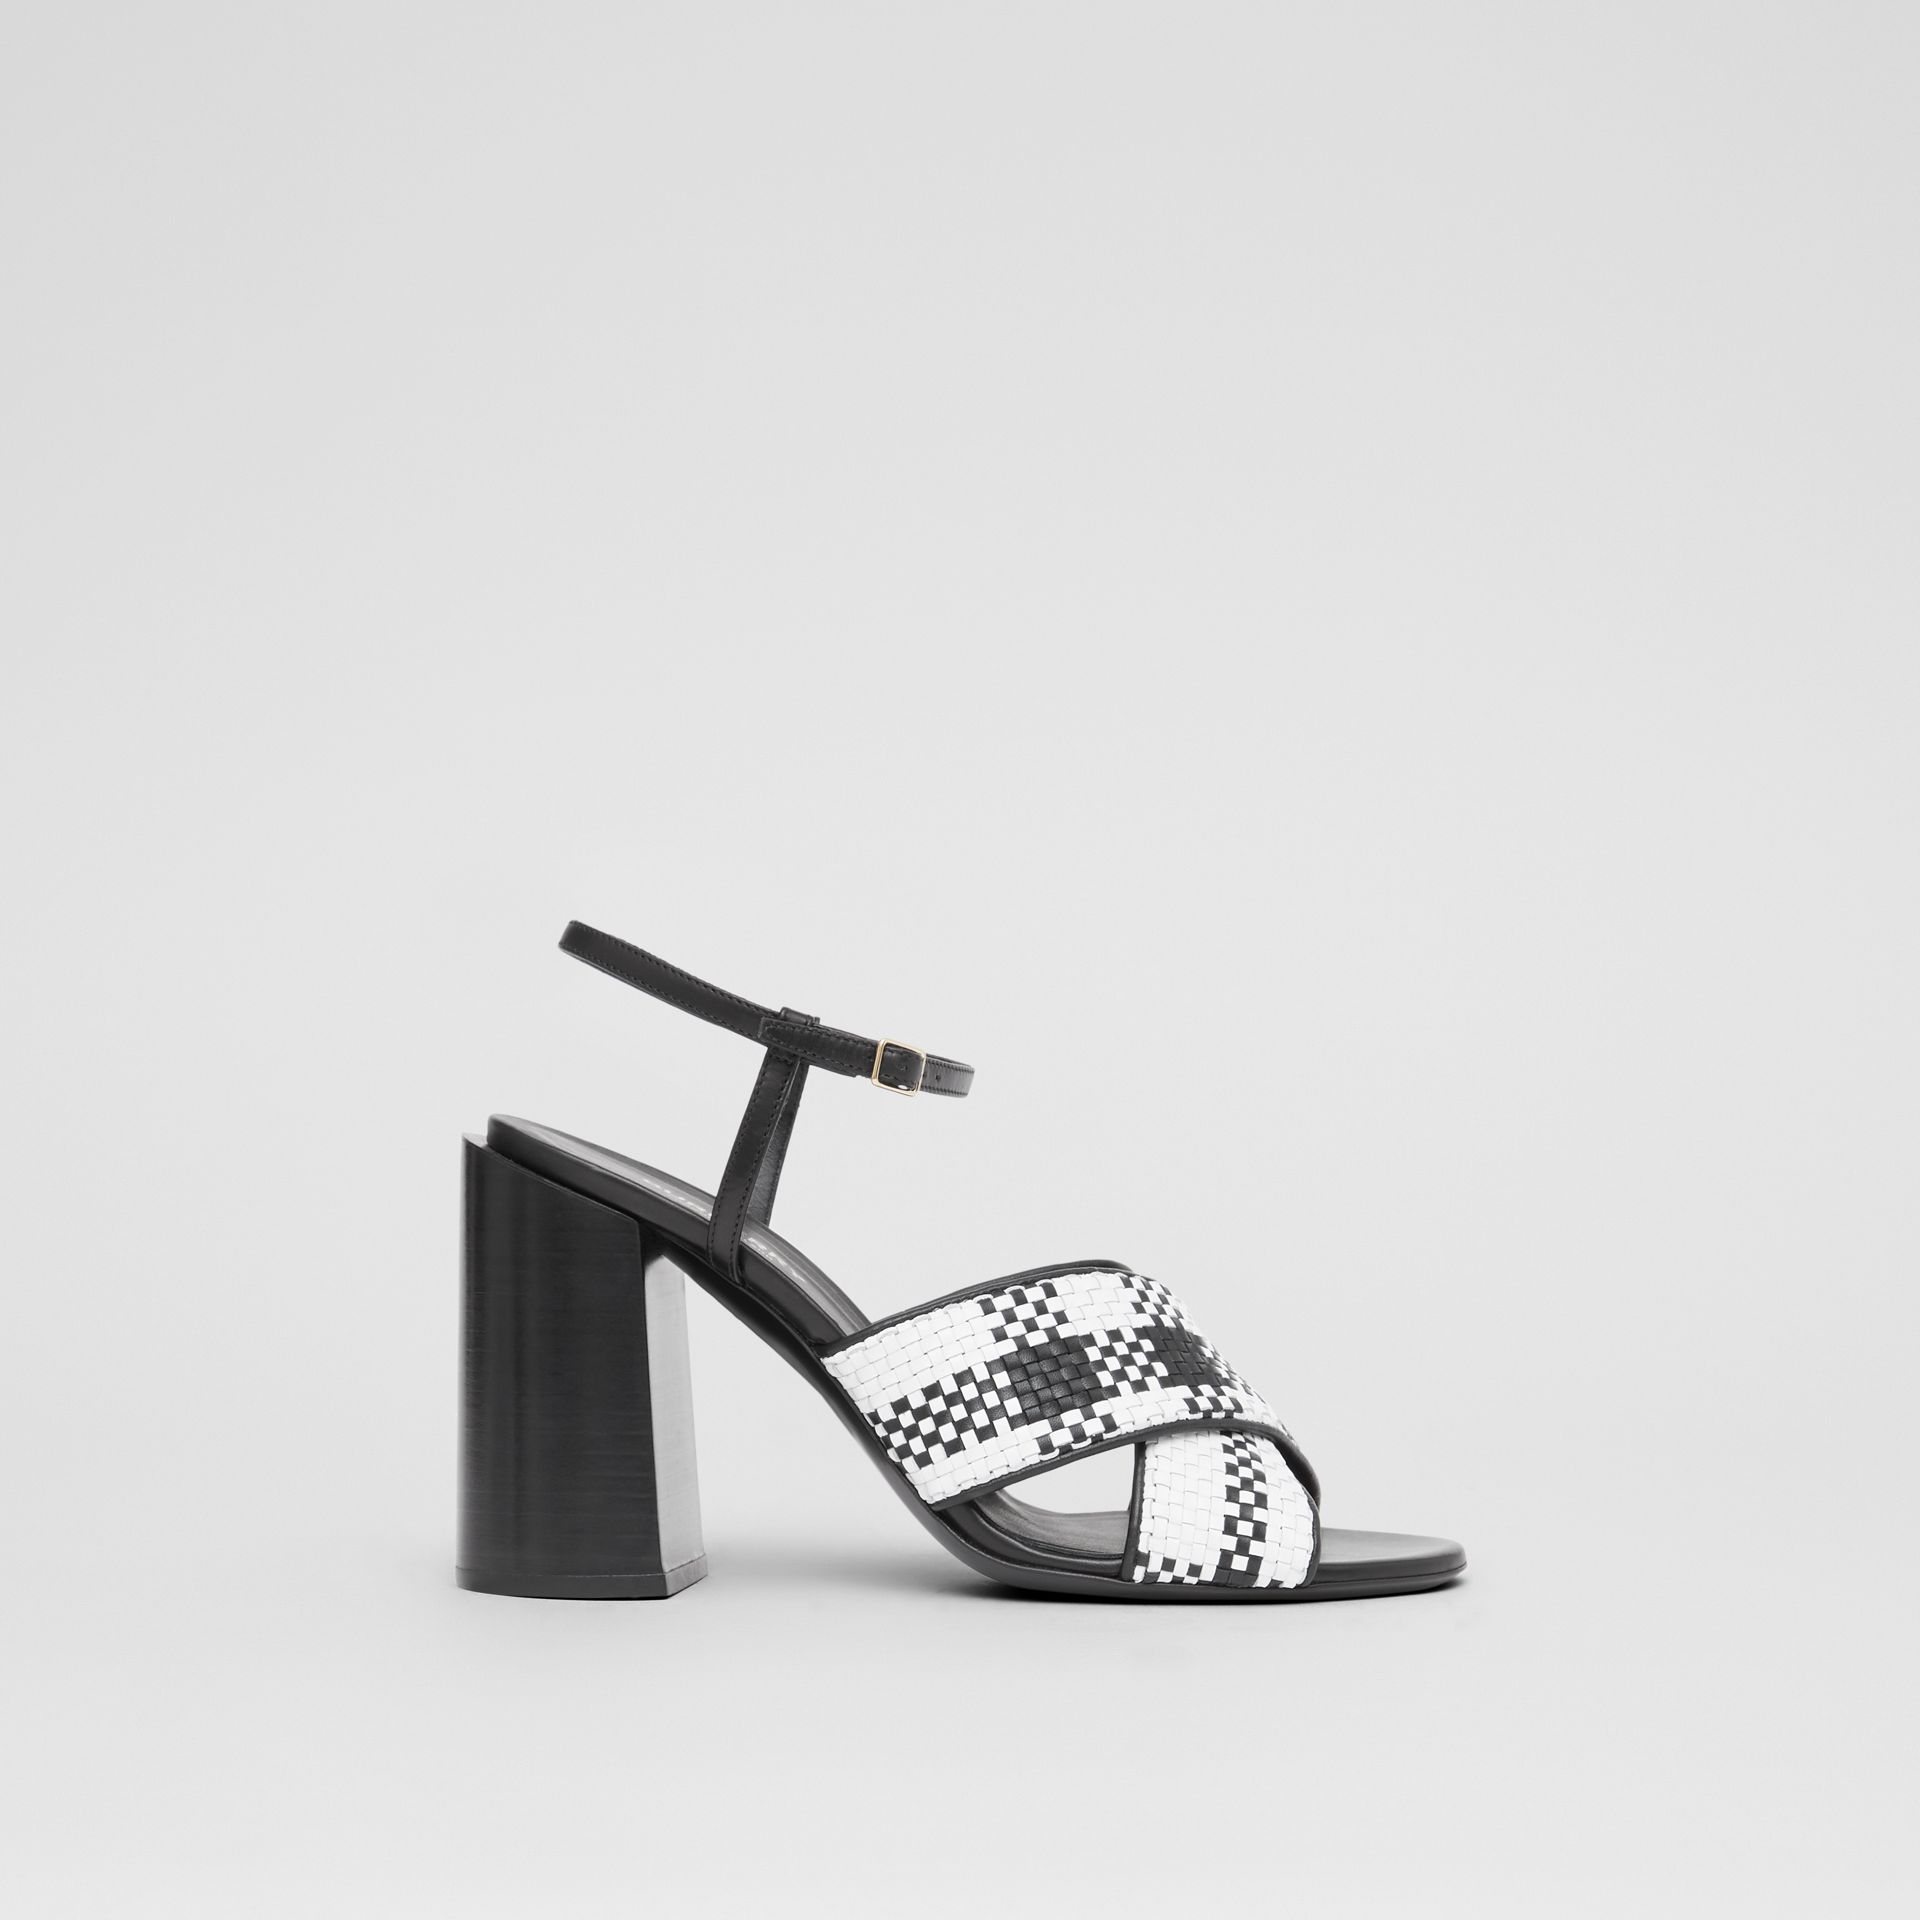 Latticed Leather Block-heel Sandals in Black/white - Women | Burberry Hong Kong S.A.R - gallery image 5